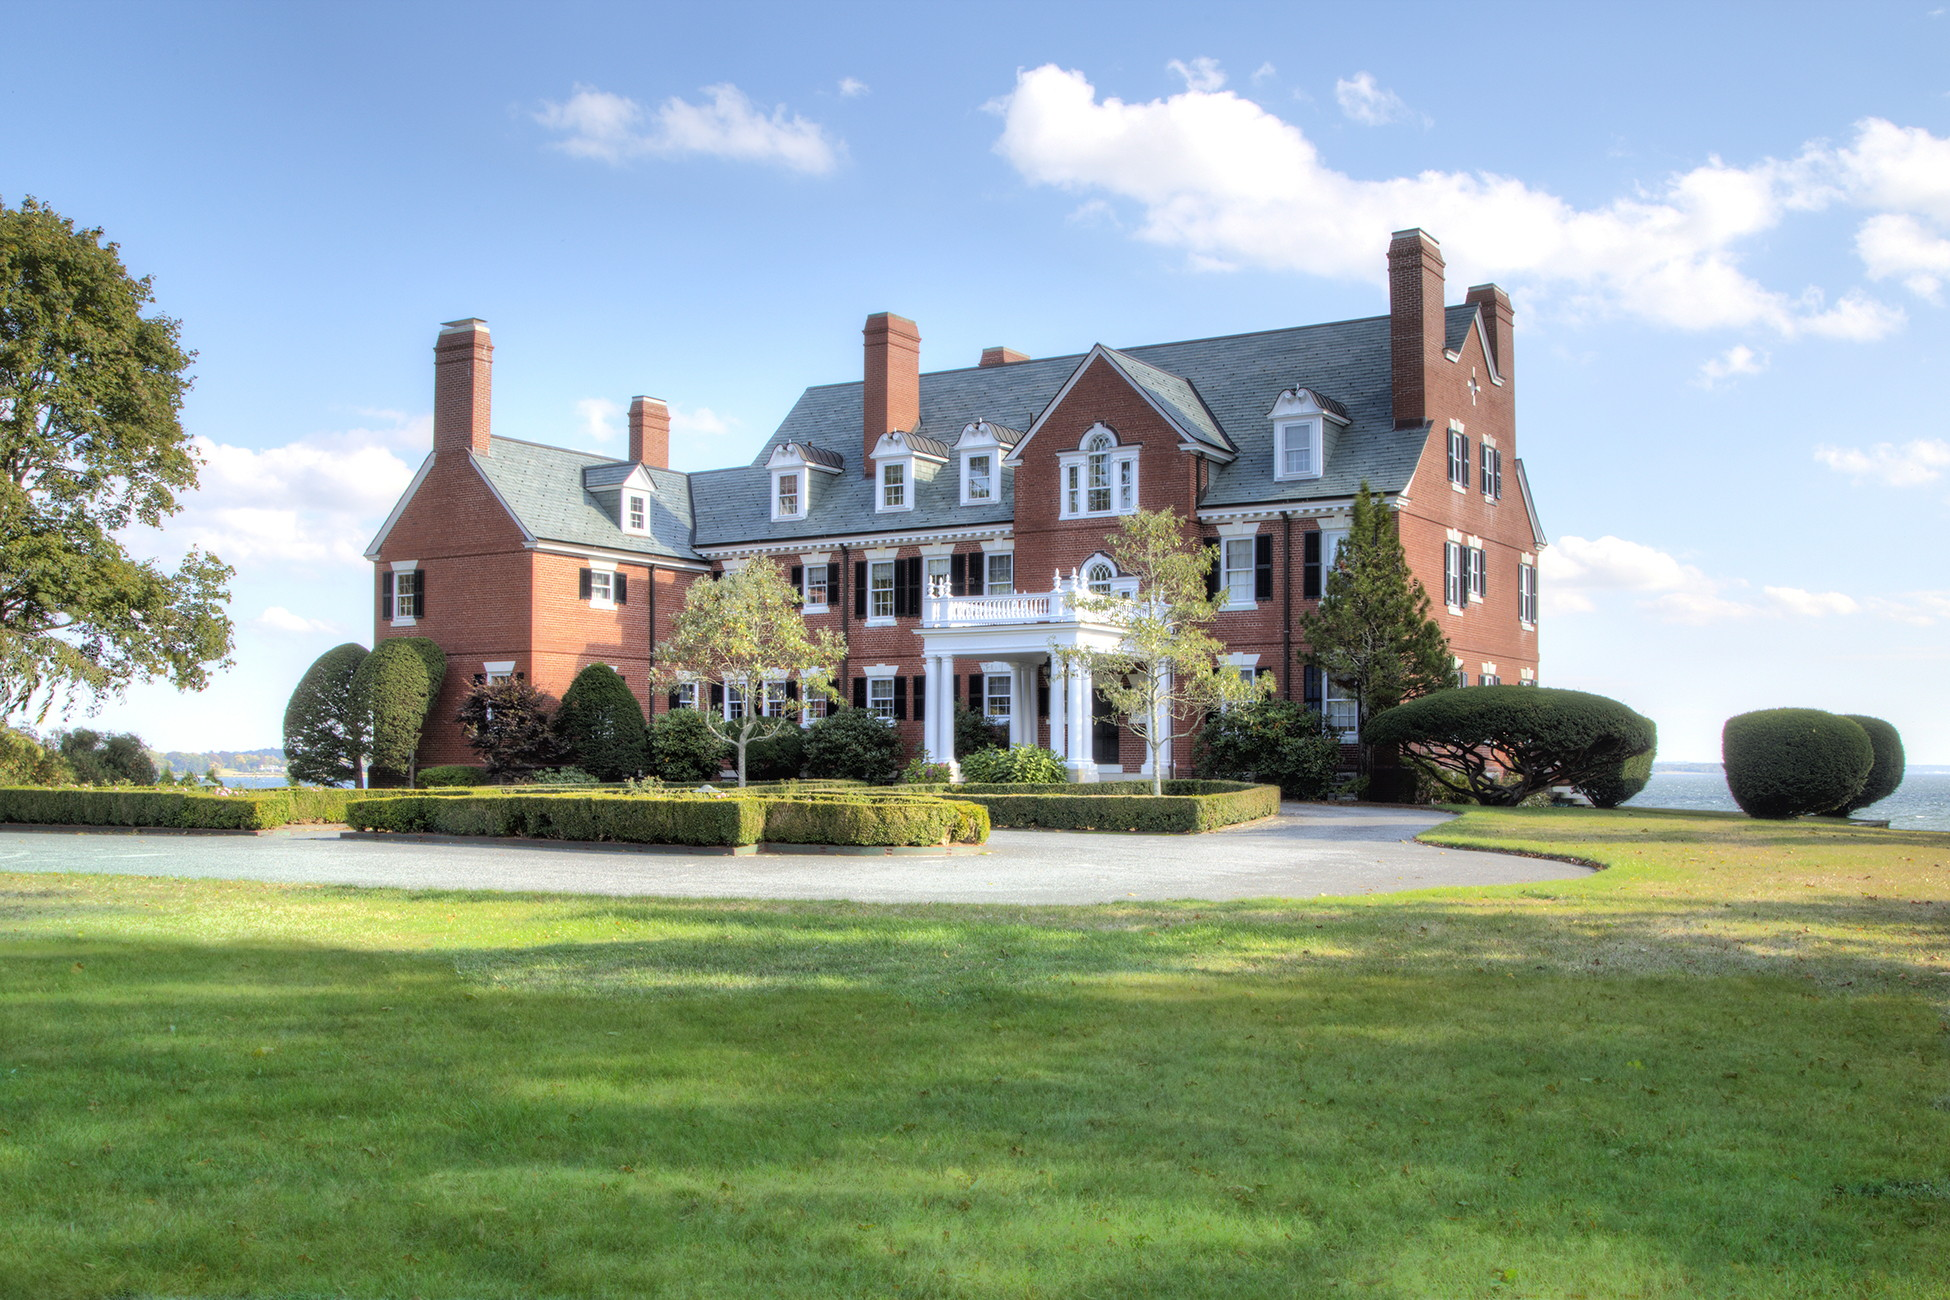 Casa Unifamiliar por un Venta en Classic Waterfront Estate 115 Nayatt Road Barrington, Rhode Island 02806 Estados Unidos